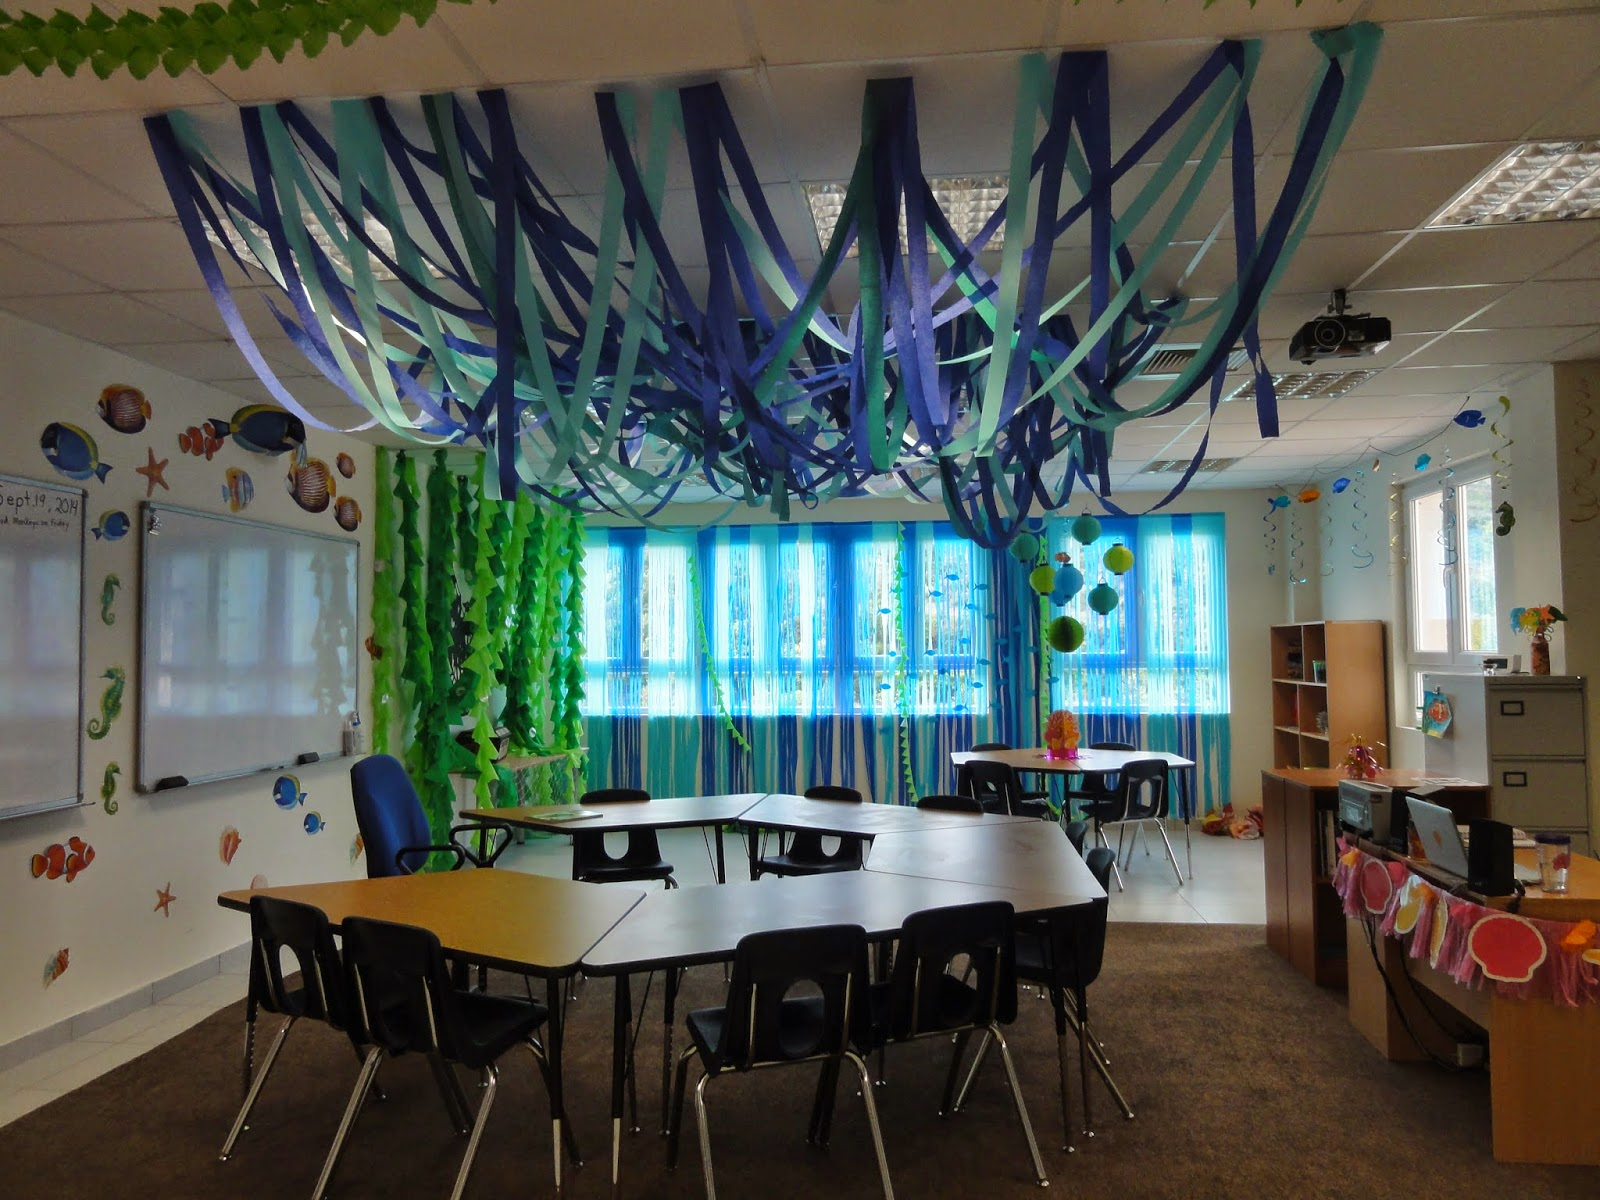 Ideas In Classroom ~ The charming classroom ocean theme